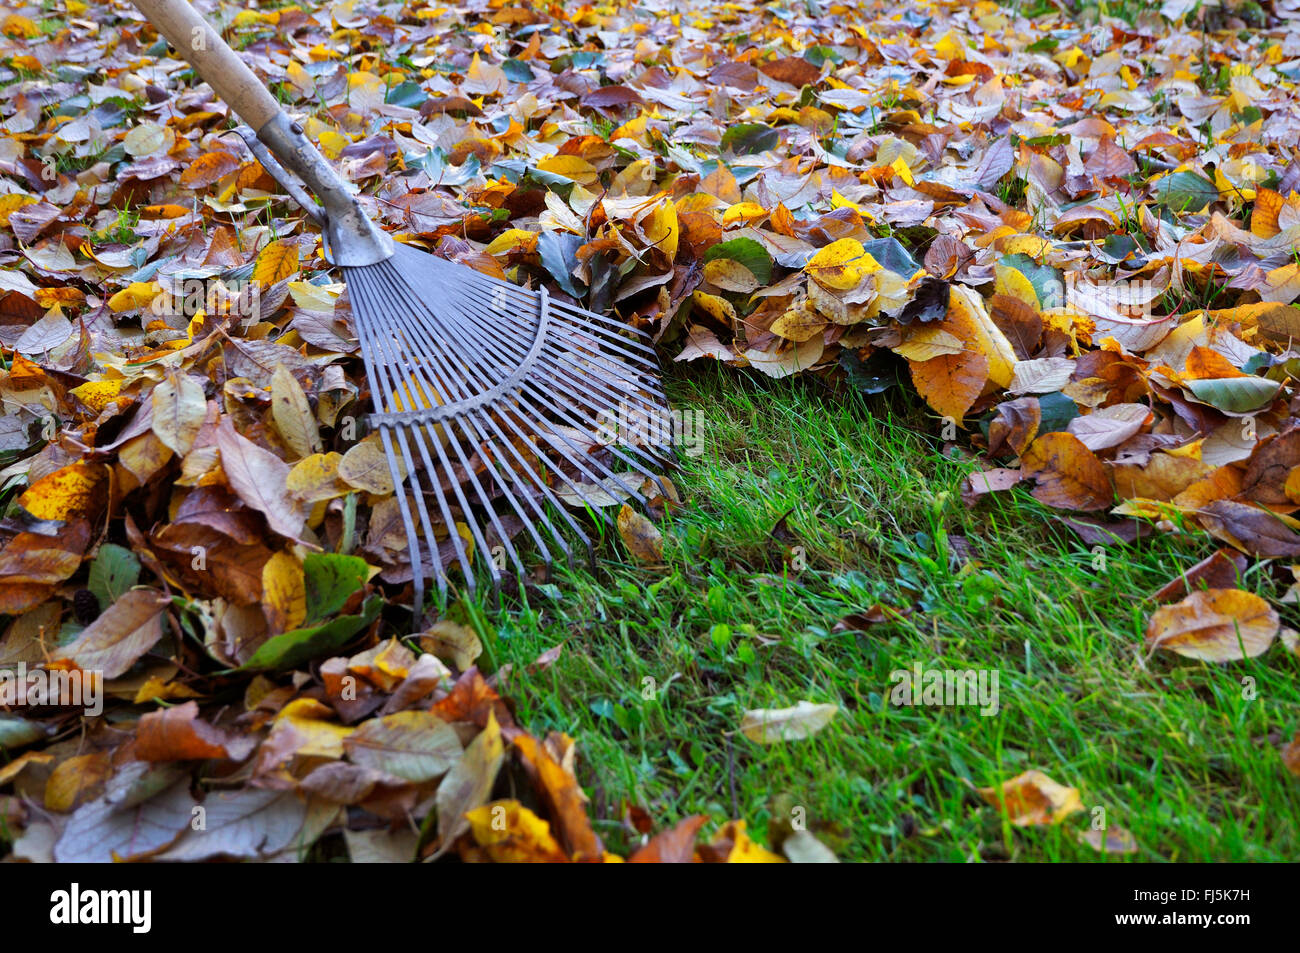 leaf rake for sweeping the foliage, Germany, North Rhine-Westphalia, Ruhr Area, Castrop-Rauxel - Stock Image